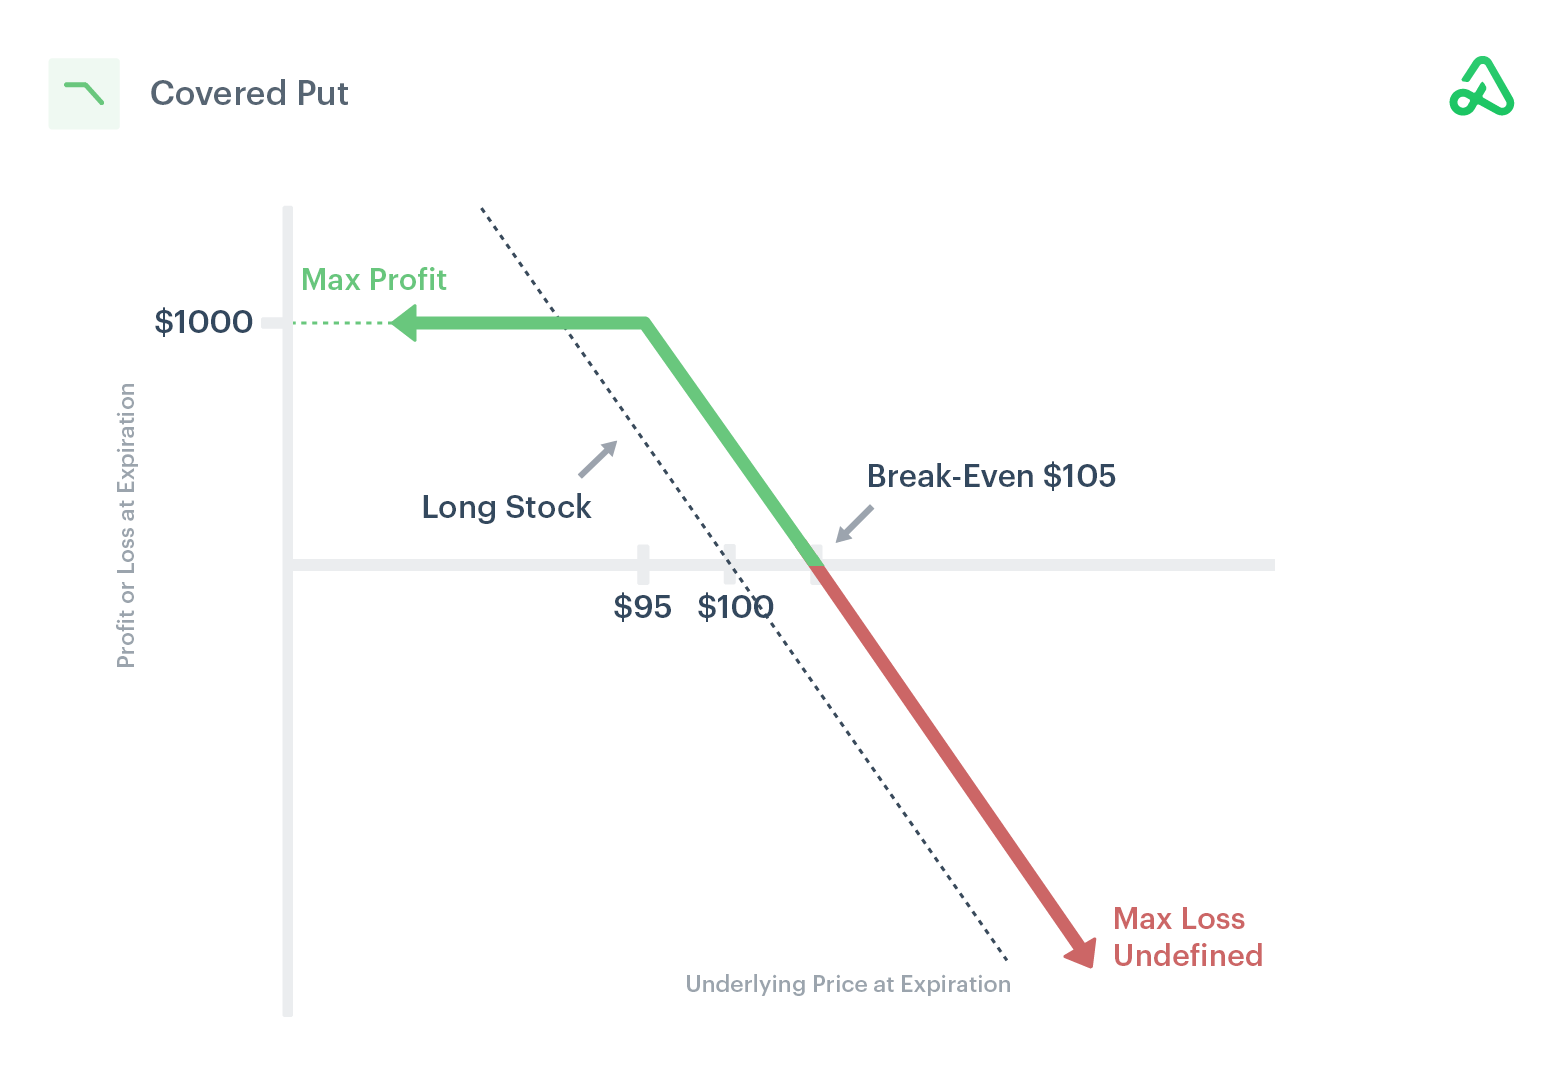 Image of a covered put payoff diagram showing max profit, max loss, and break-even points